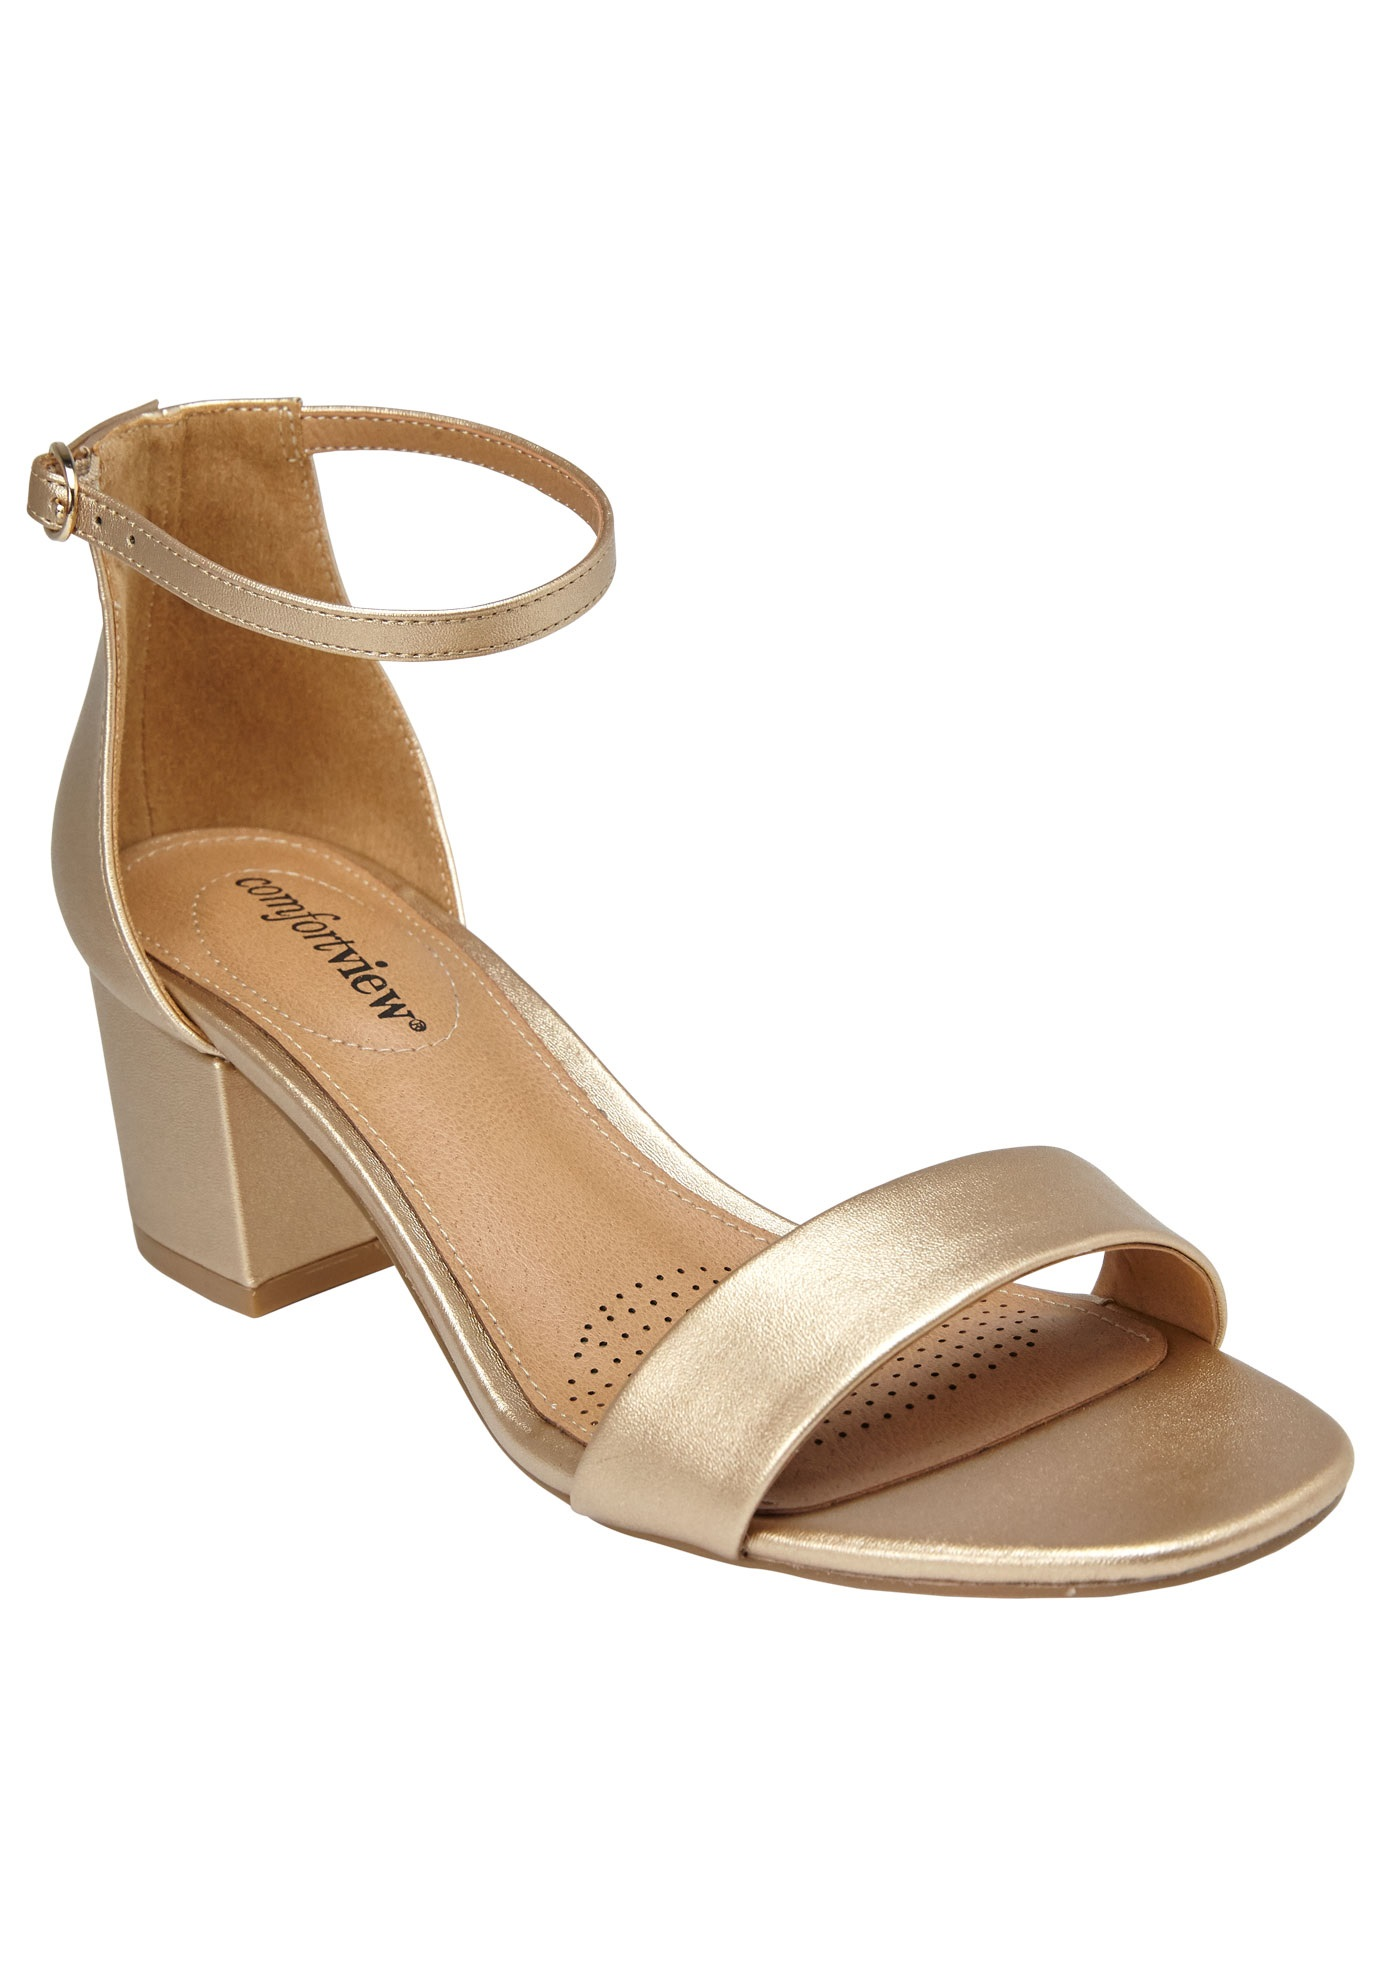 orly sandals by comfortview plus size dress sandals full beauty